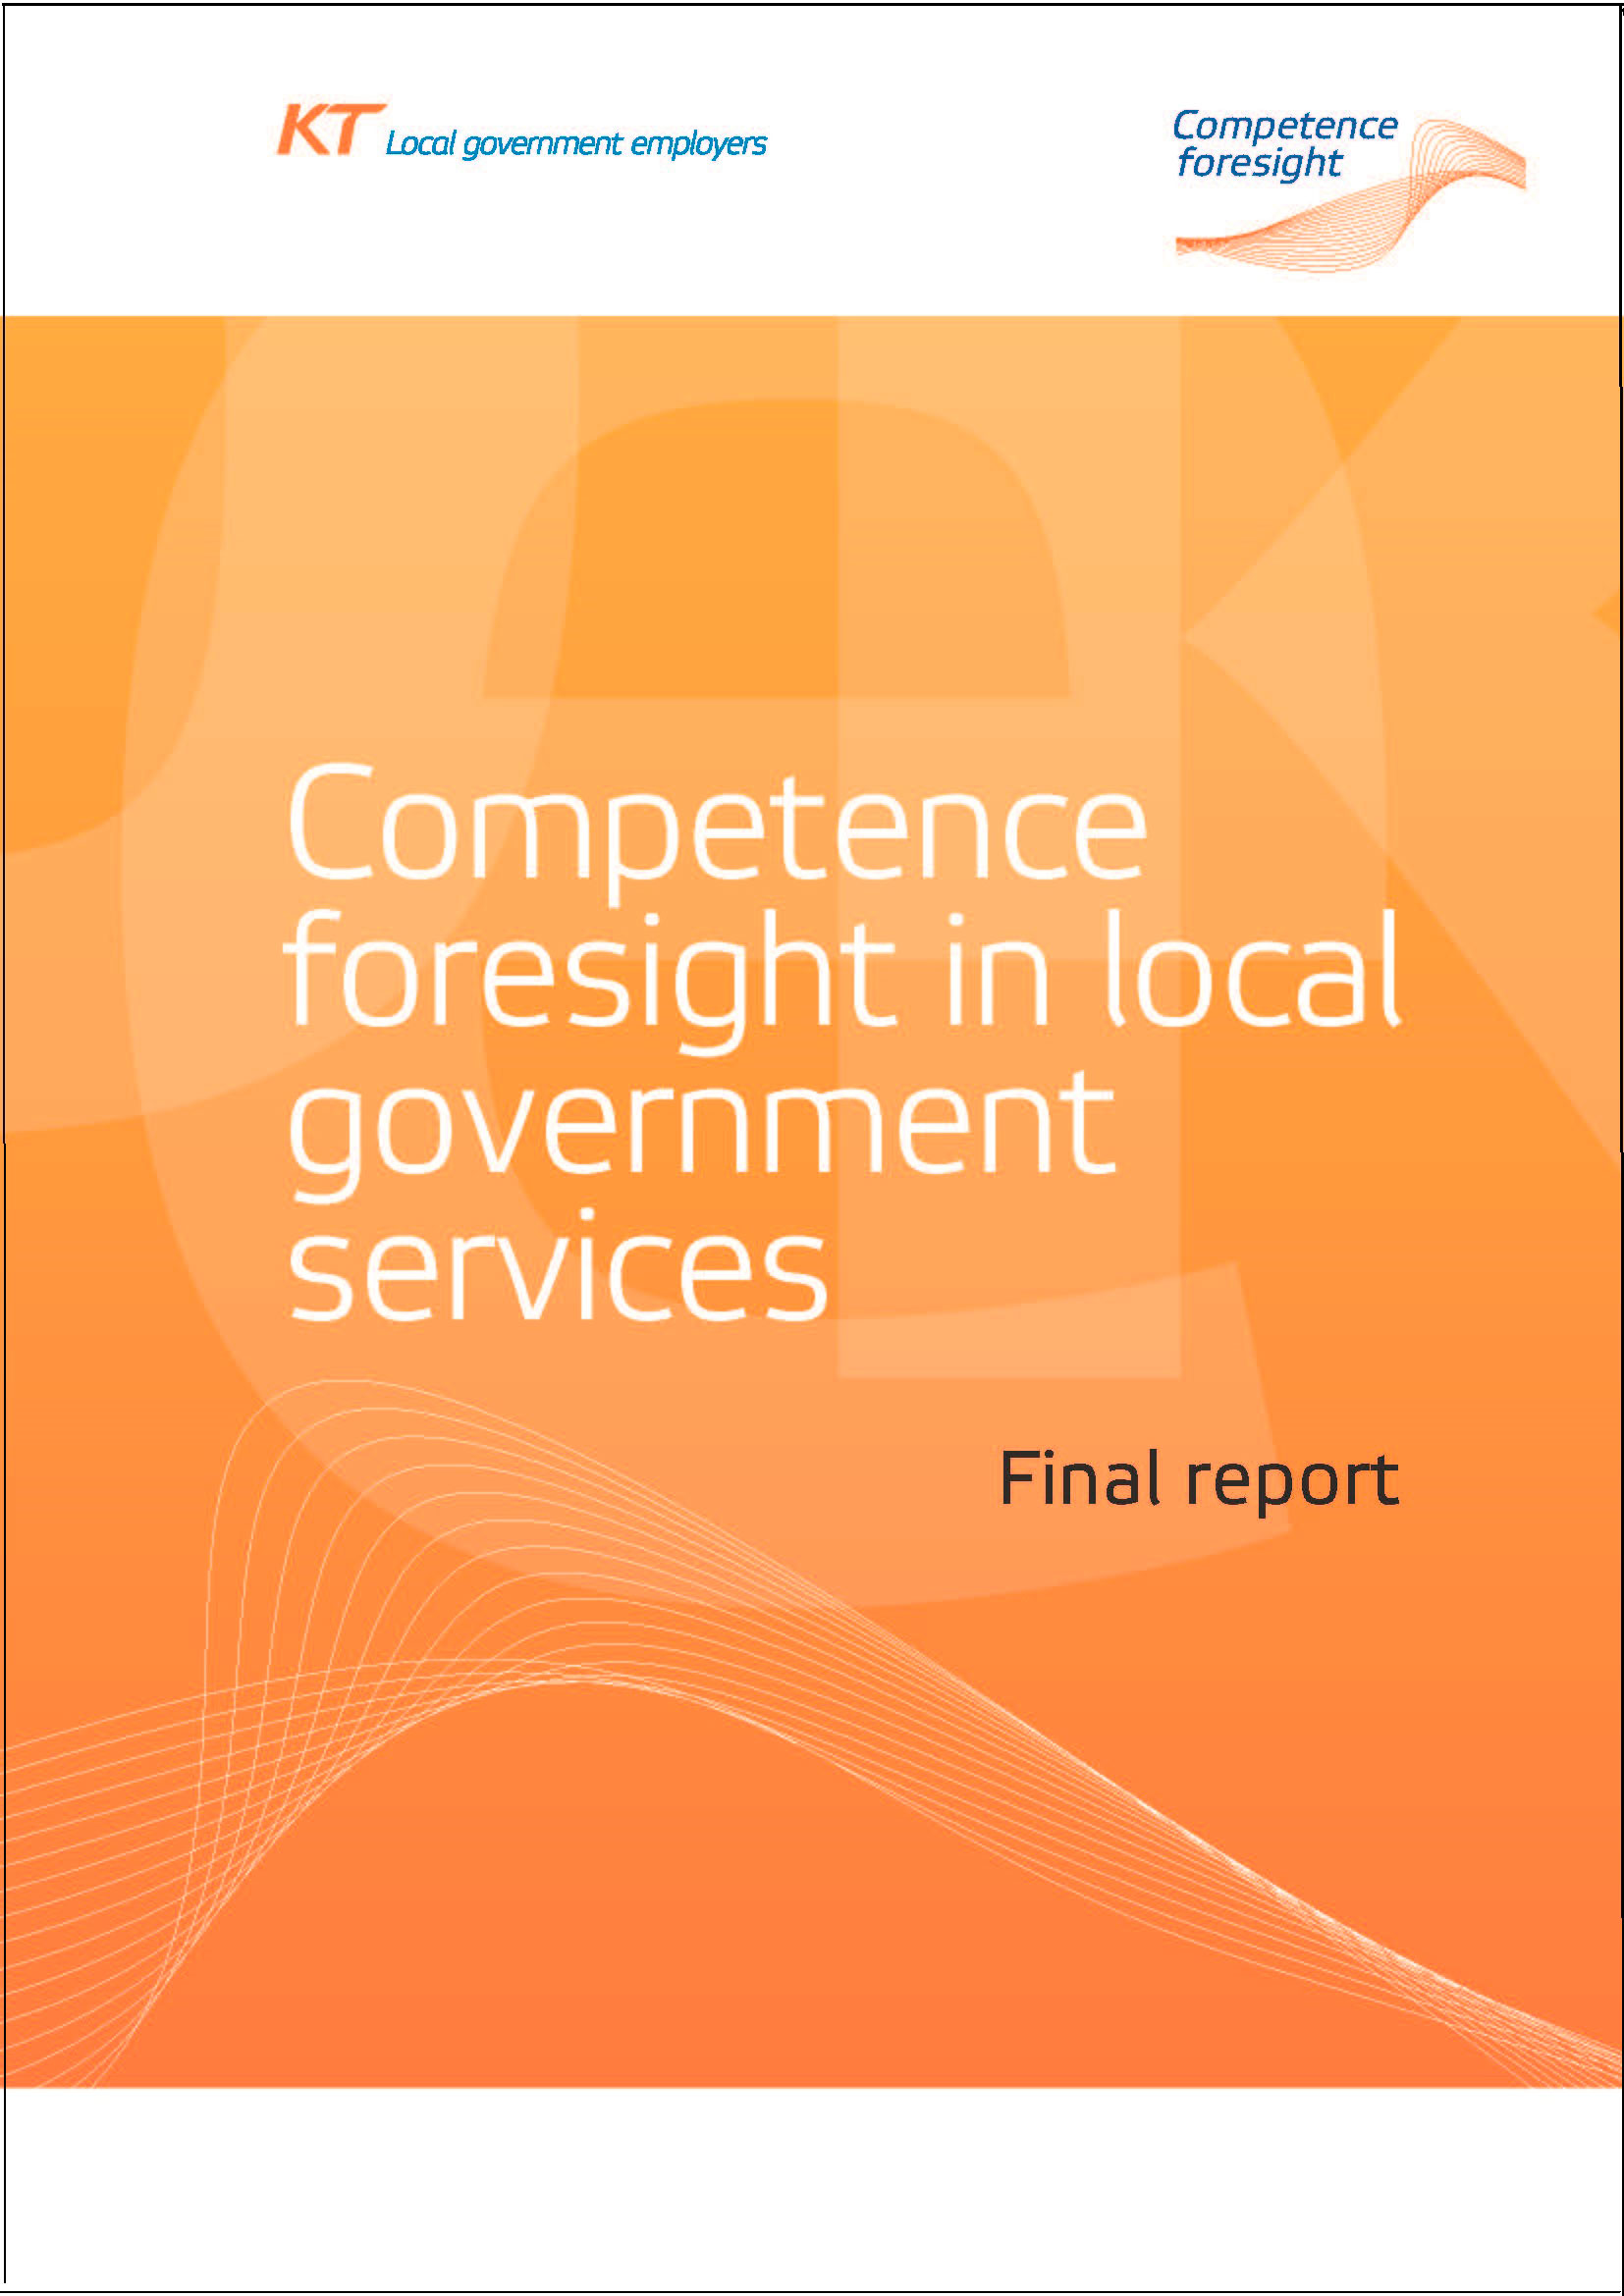 Competence foresight book cover